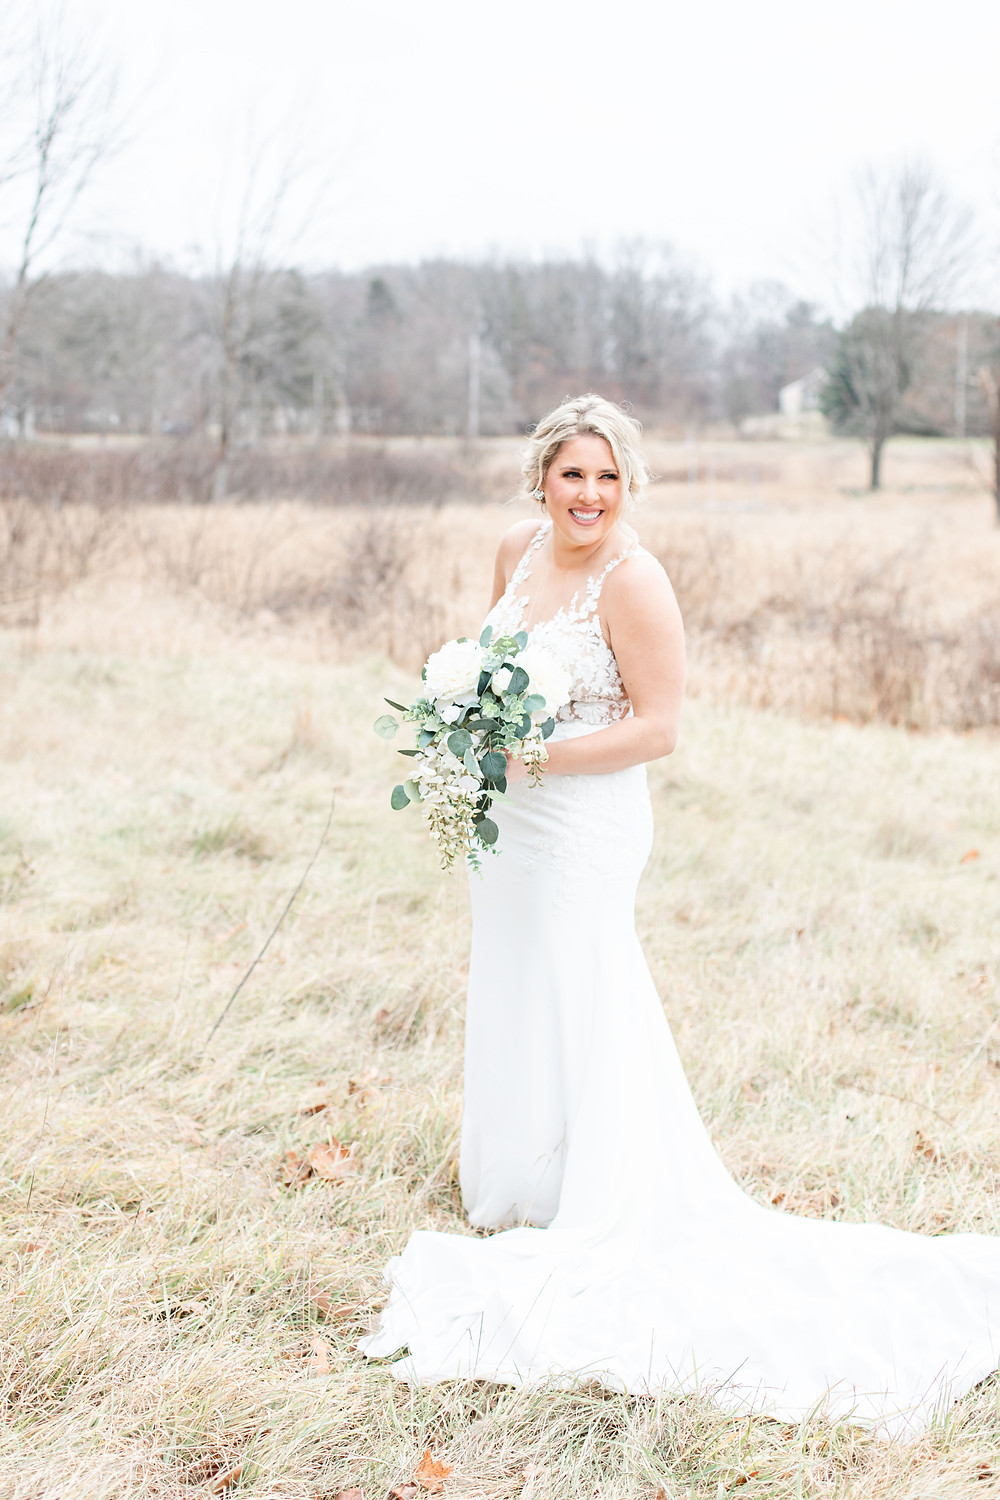 josh and Andrea photography husband and wife team michigan winter wedding bride bridal portrait